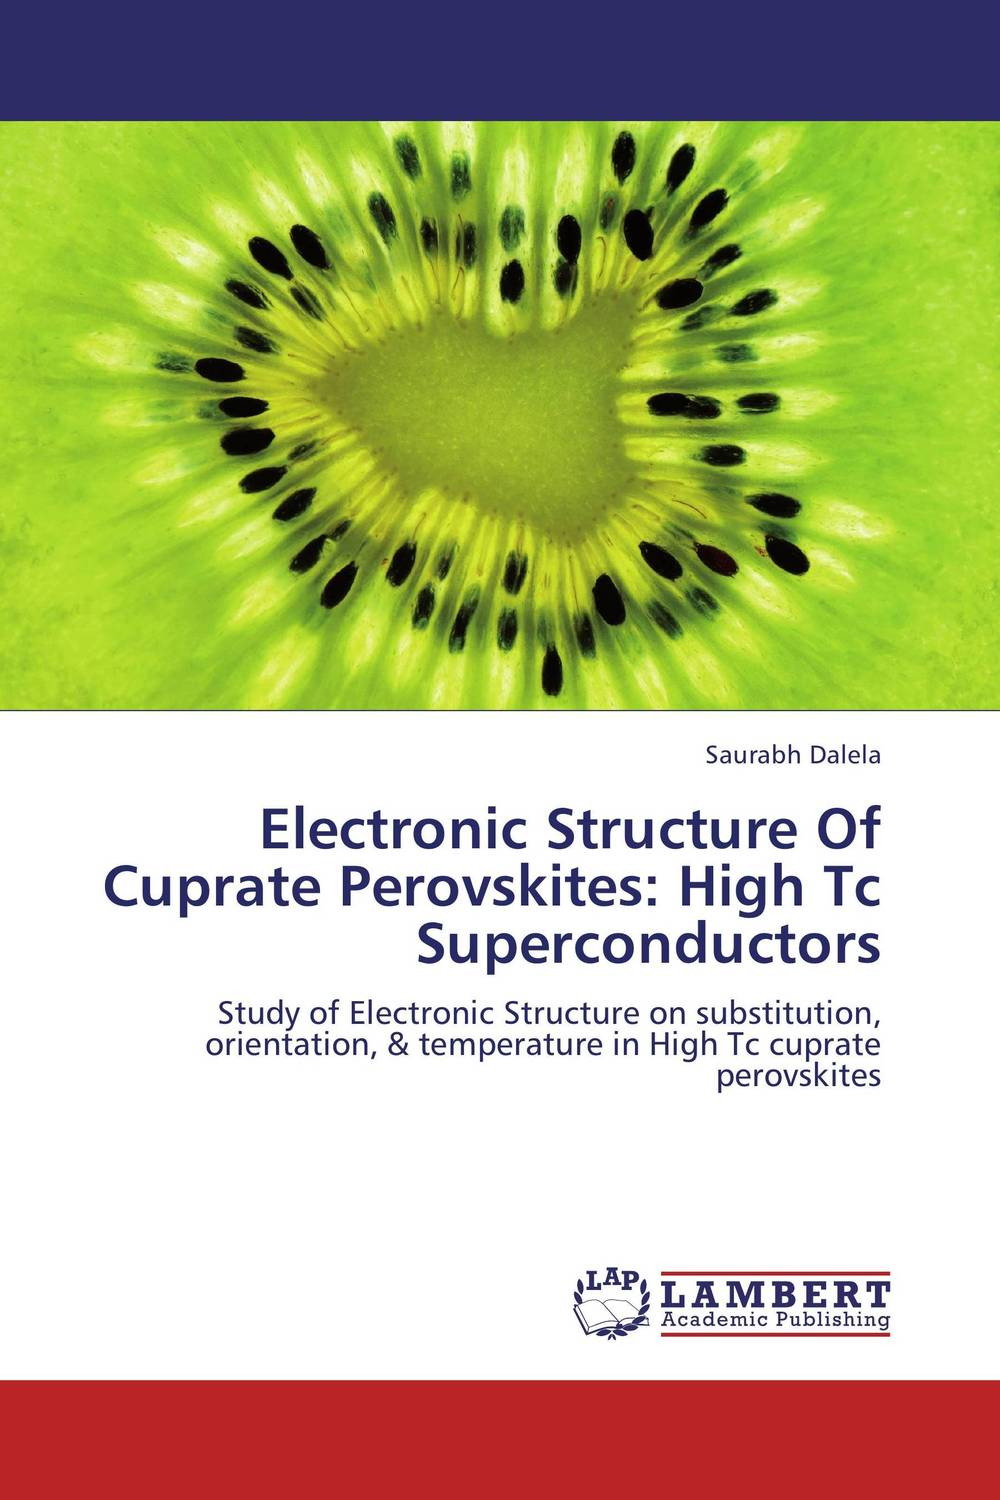 Electronic Structure Of Cuprate Perovskites: High Tc Superconductors насос циркуляционный in the electronic record 24v 12v